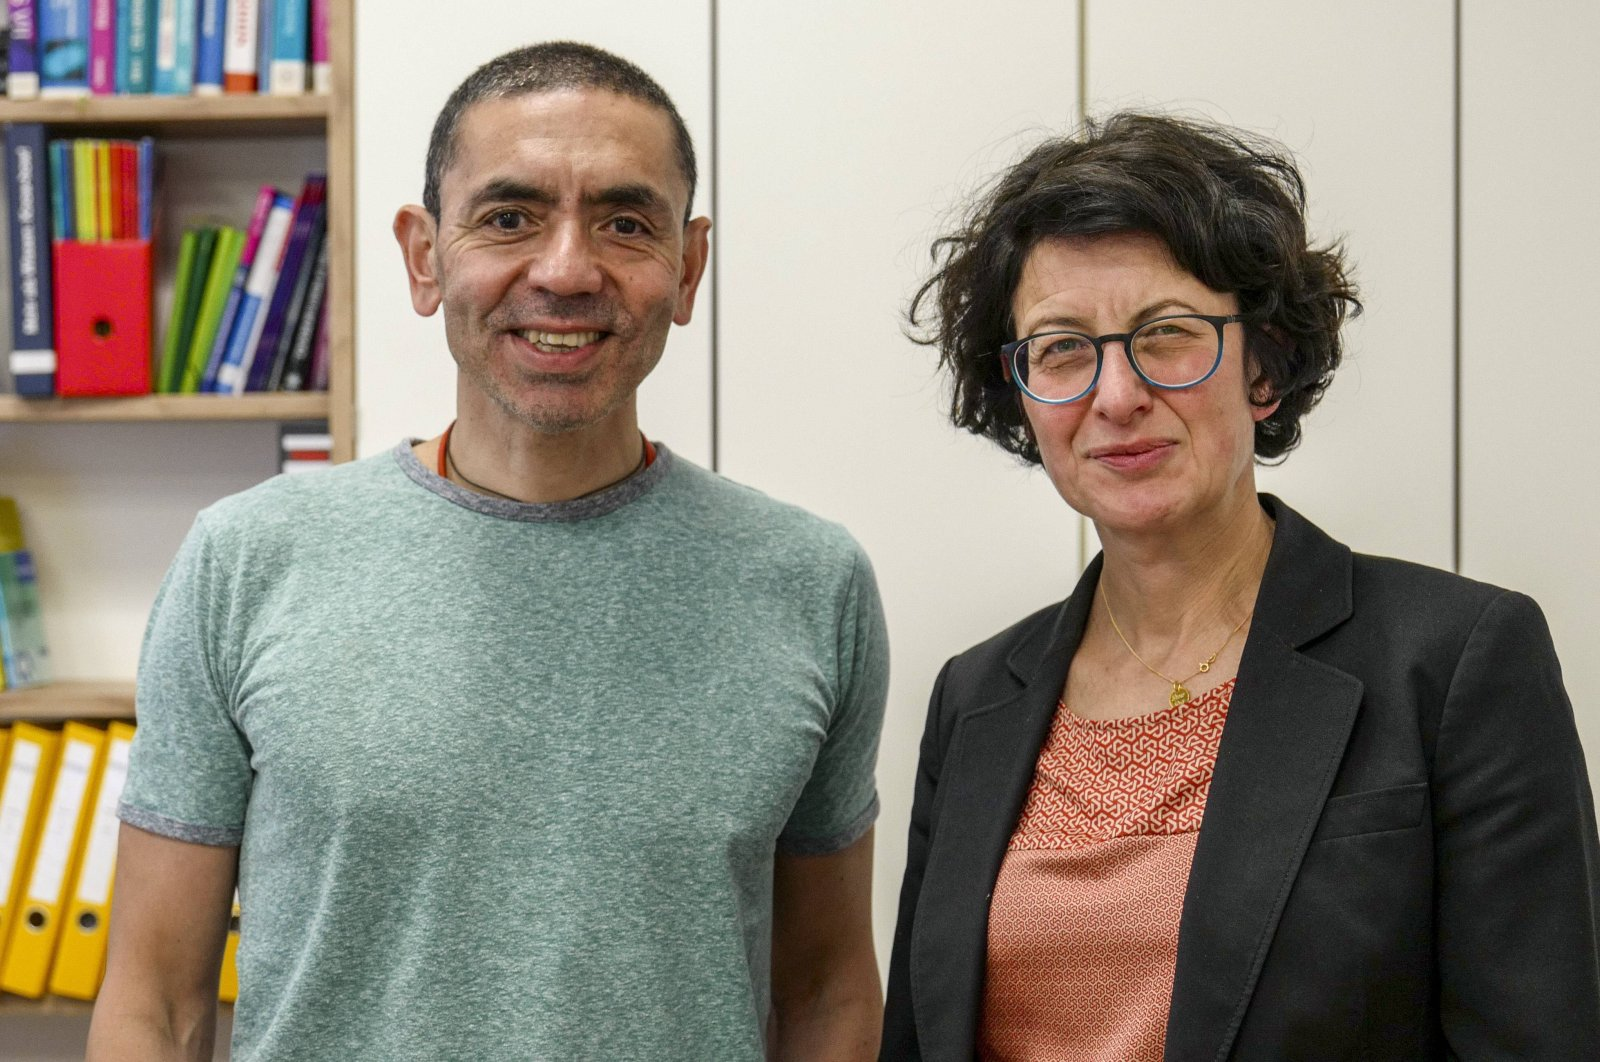 Uğur Şahin (L) is a scientist with more than 60 independent patents in a variety of fields, including life science and biotechnology. Dr. Özlem Türeci is a physician with over 20 years of cancer research experience. (Reuters Photo)